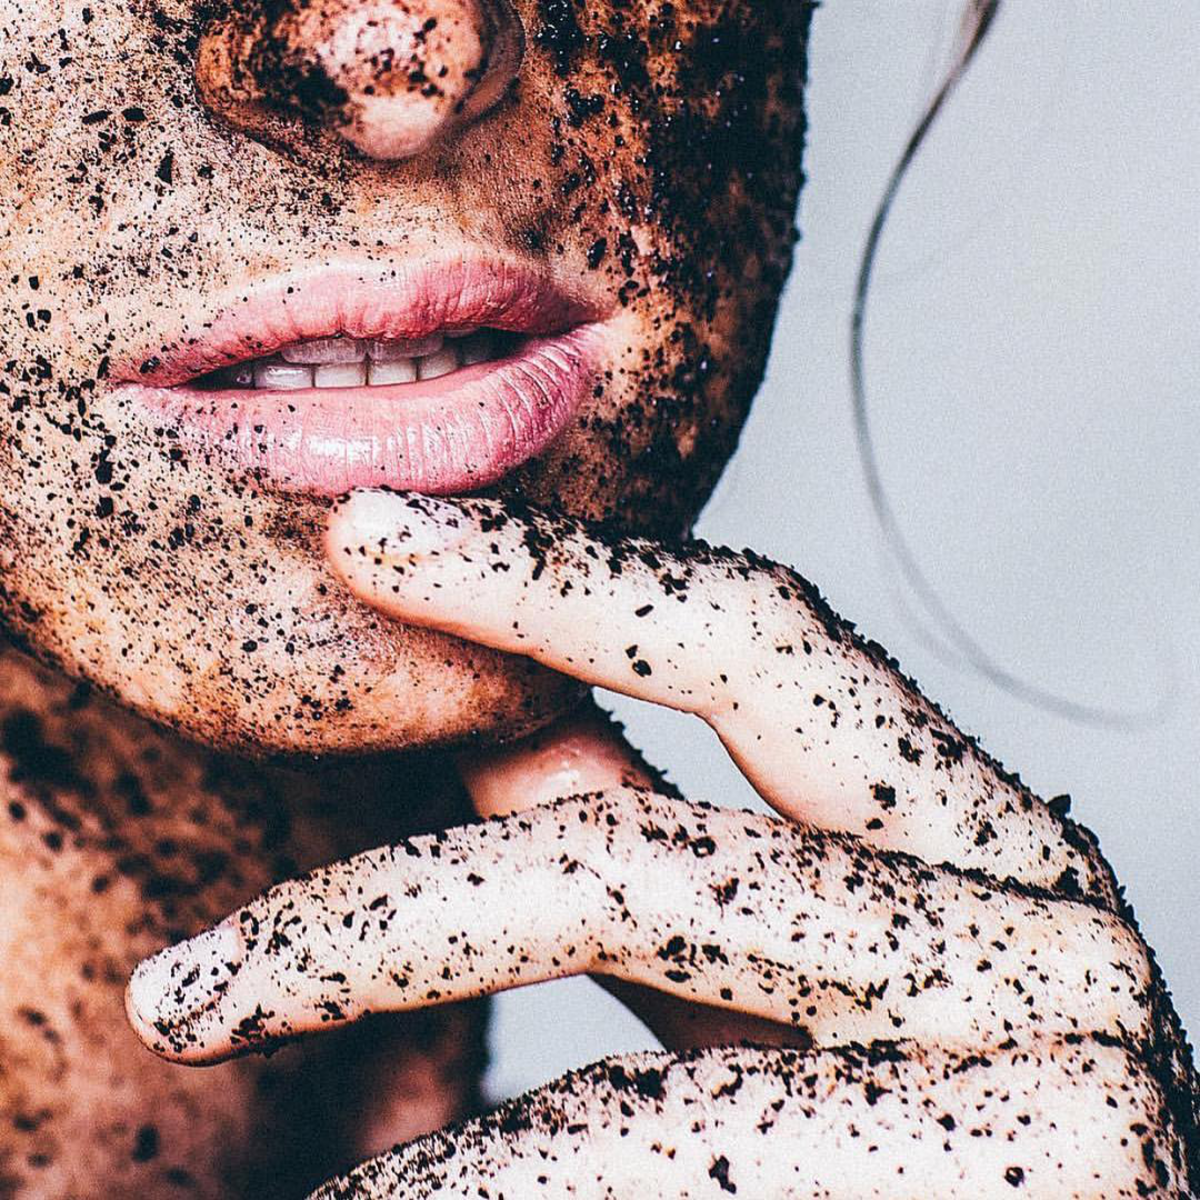 Frank Body's Original Coffee Scrub in action. Photo: Instagram/@frank_bod